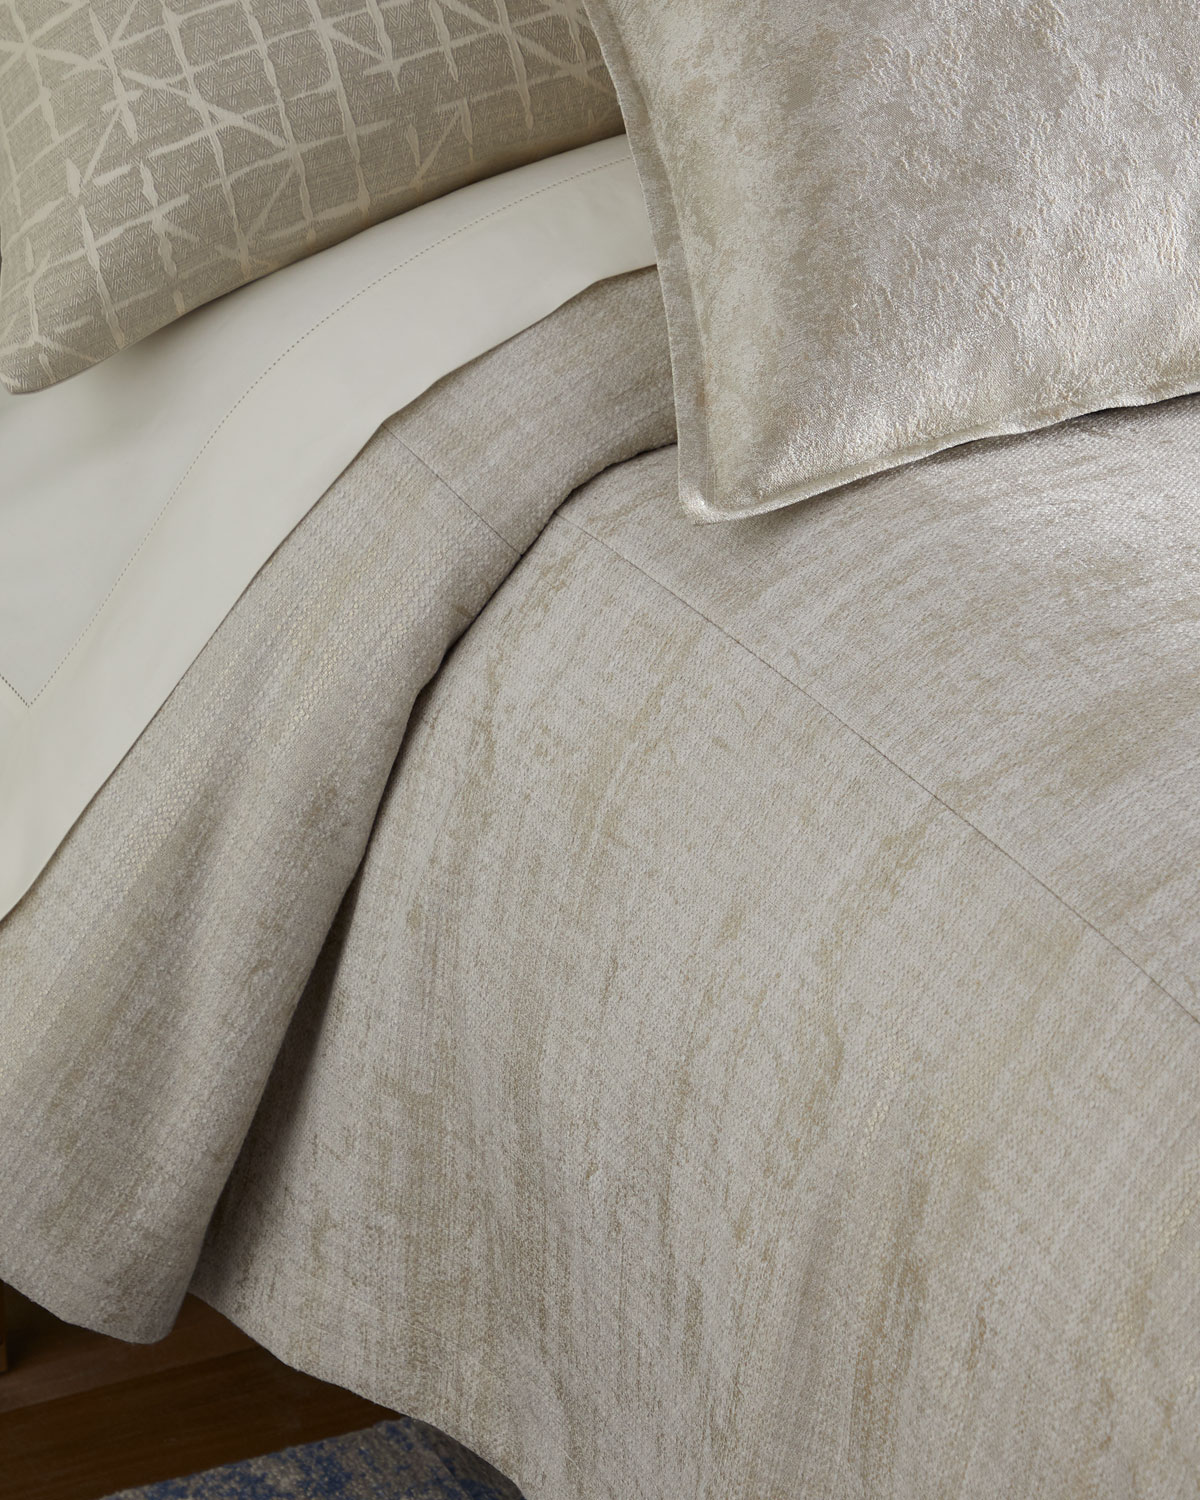 Fino Lino Linen & Lace Sheets INESSA QUEEN COVERLET